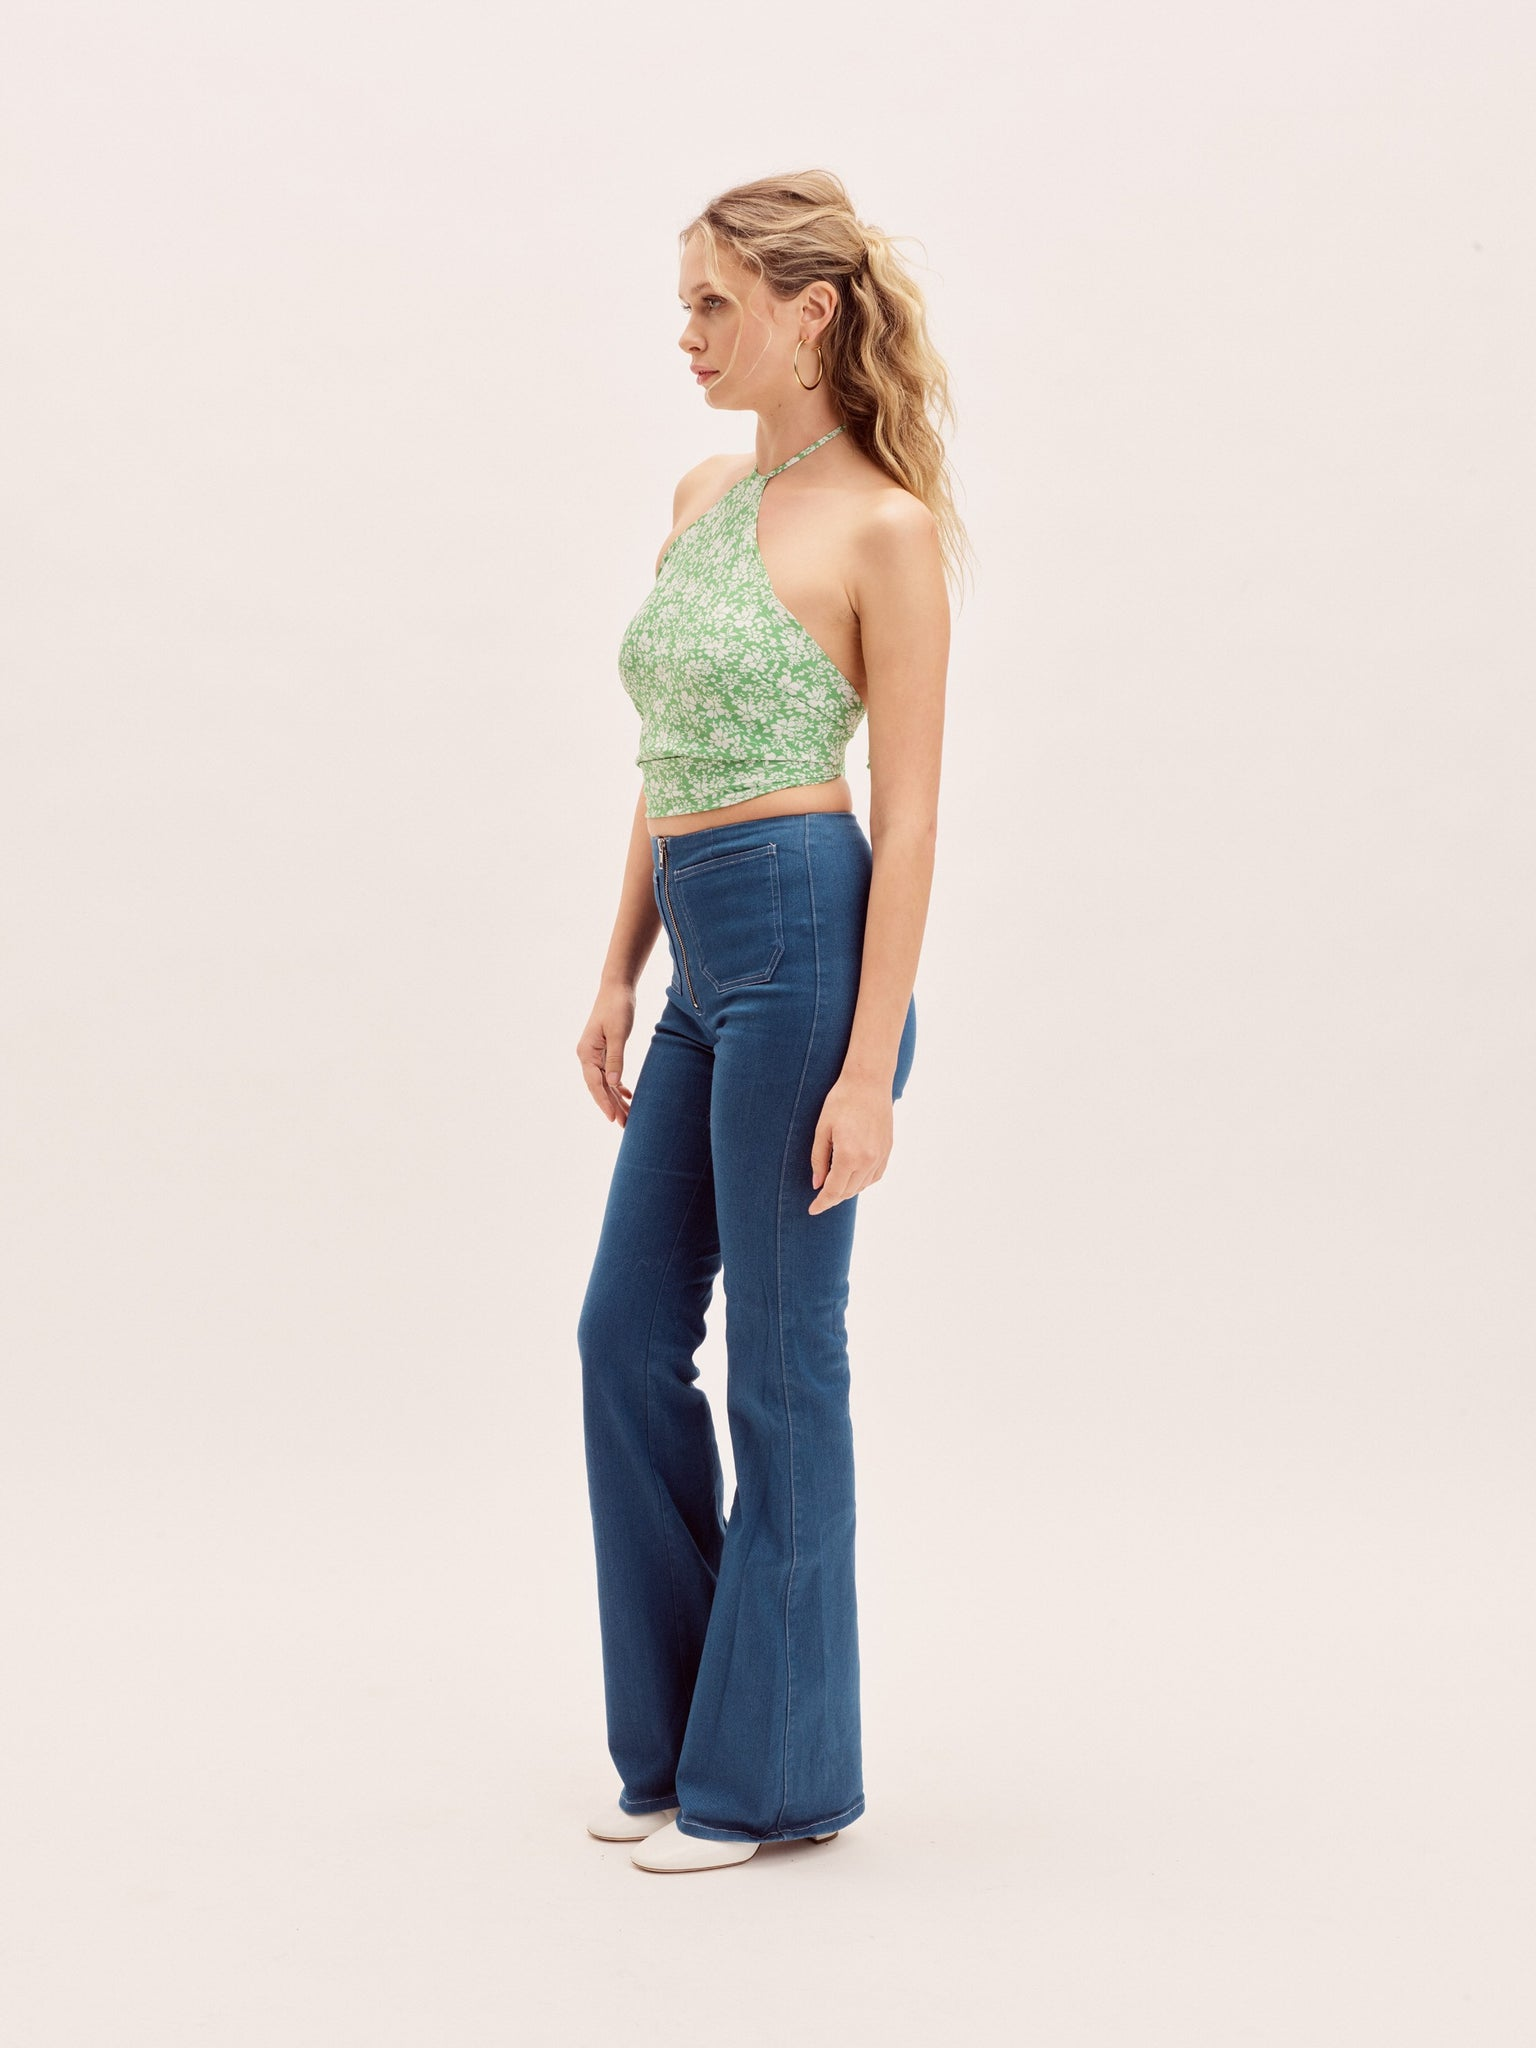 Clothing The Elle Top - Spring Green Vanessa Mooney